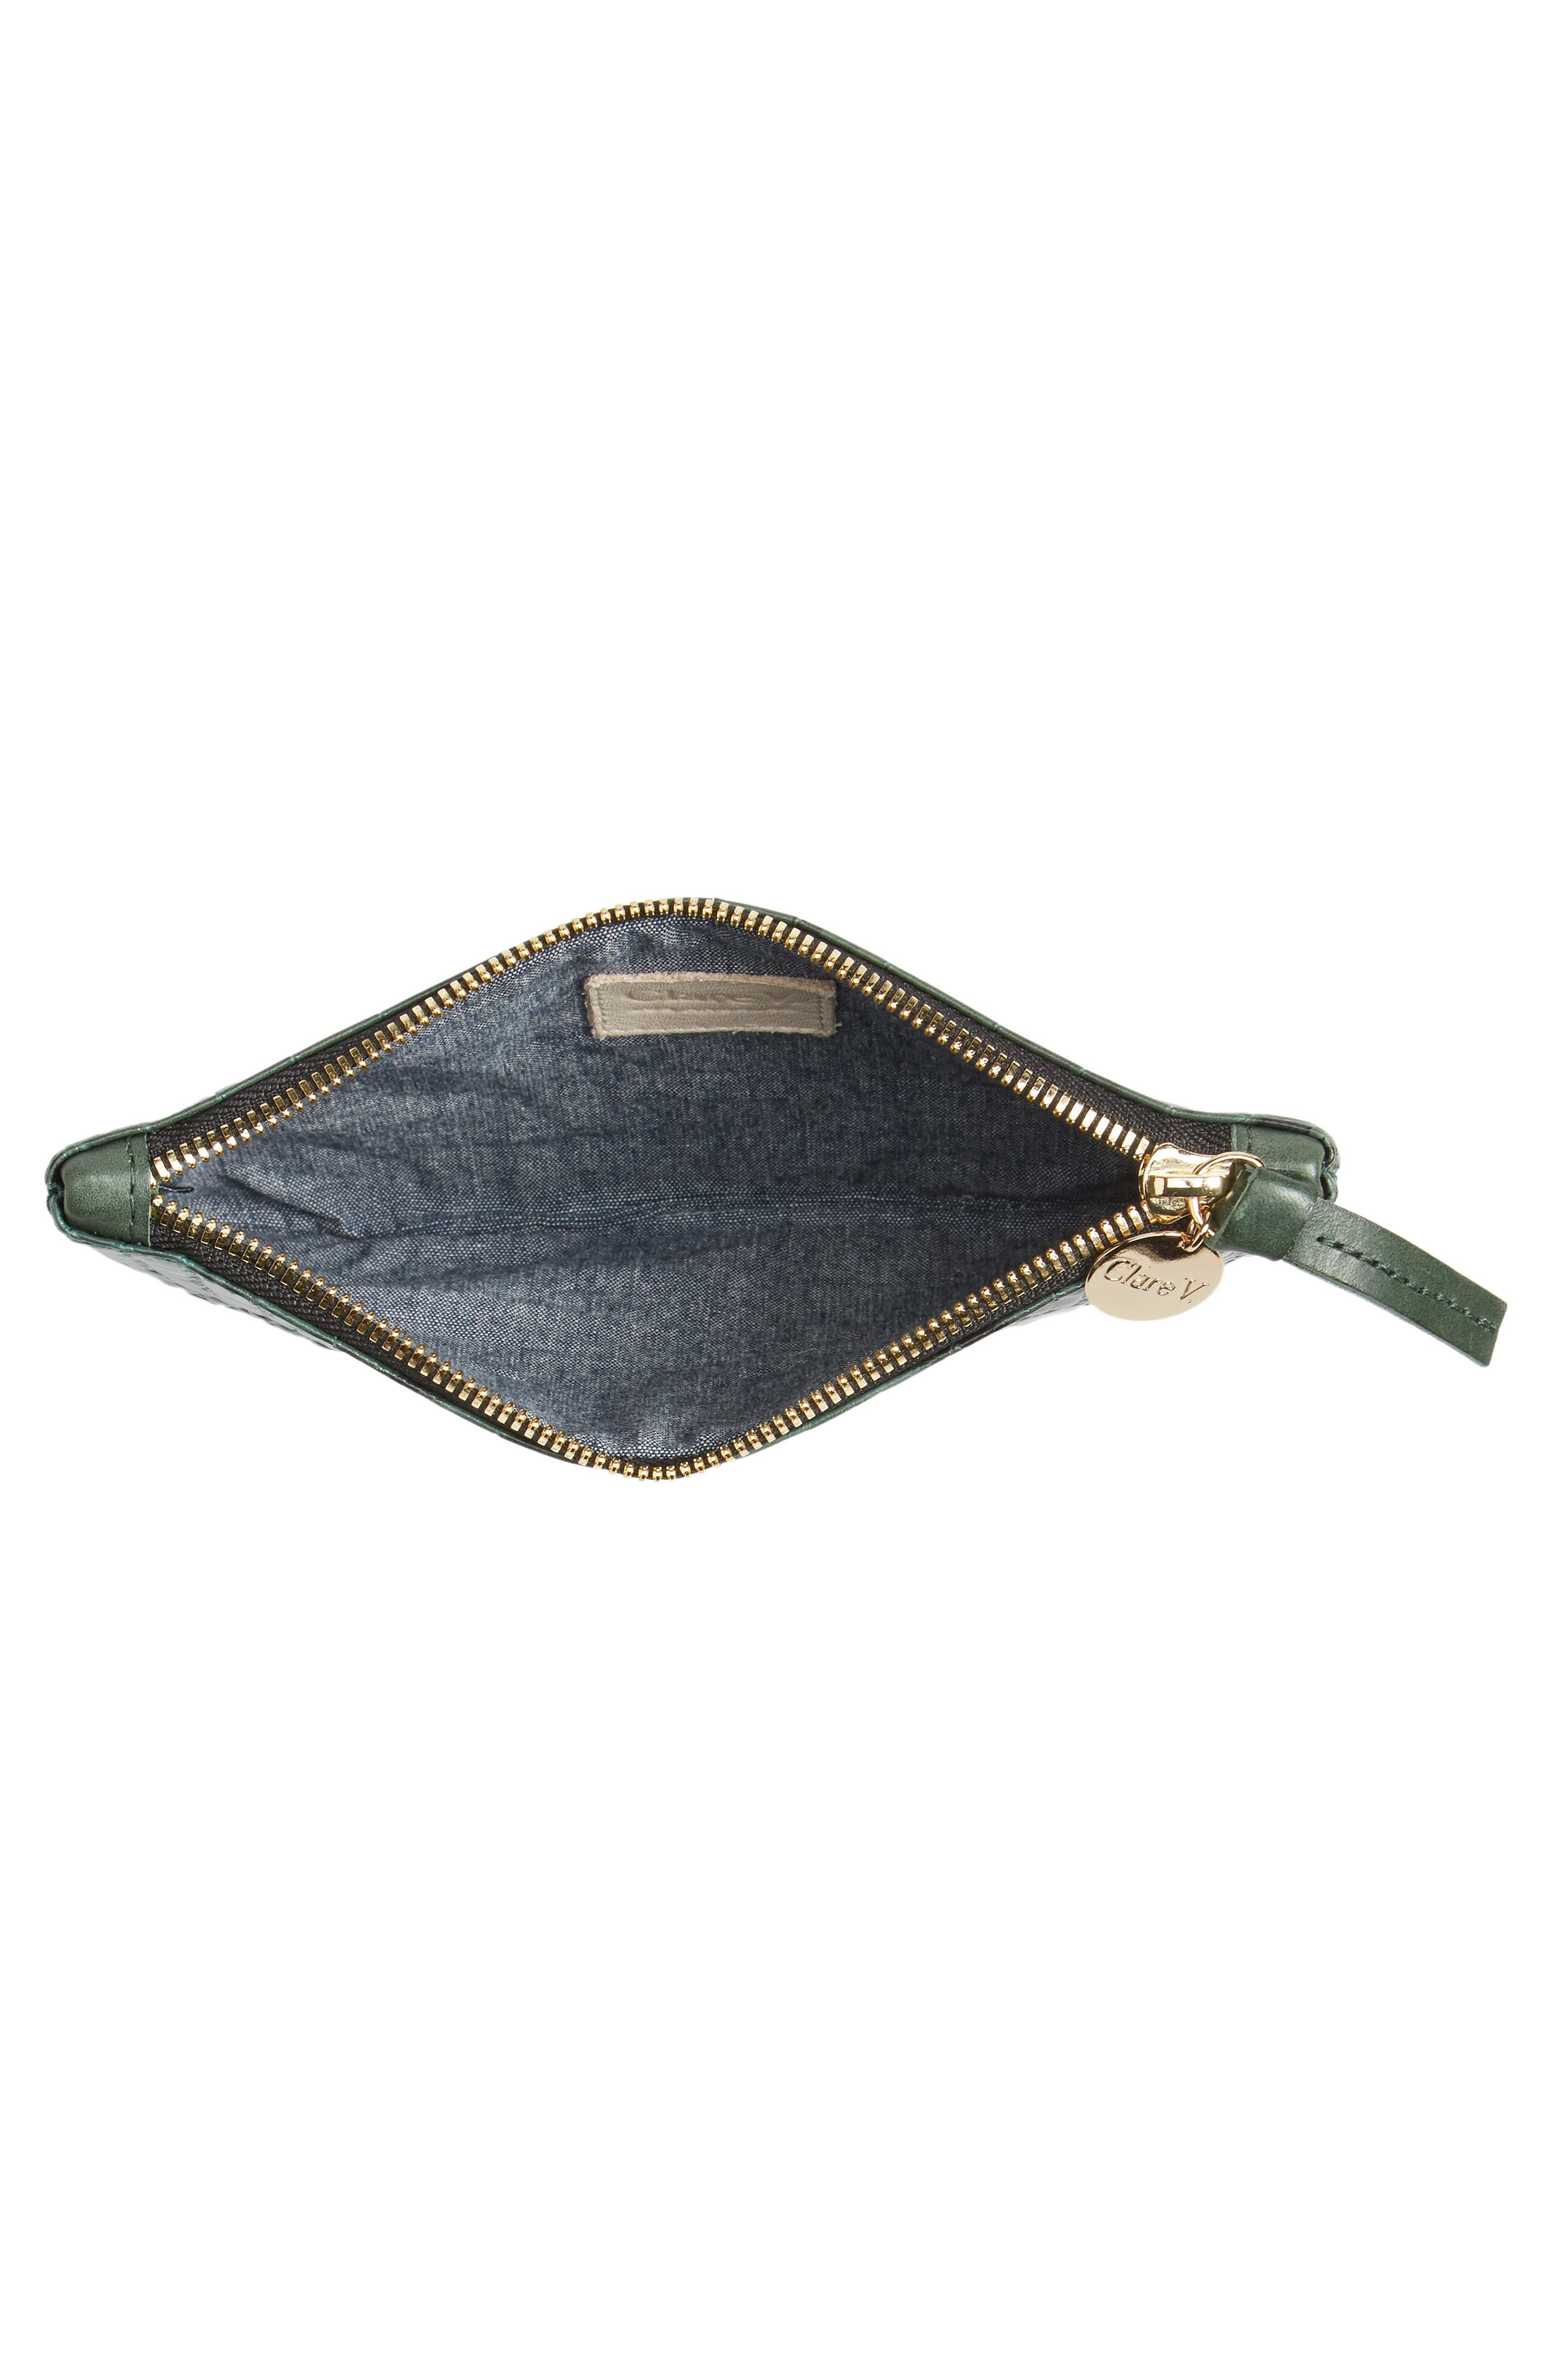 Croc Embossed Leather Clutch,                             Alternate thumbnail 4, color,                             300